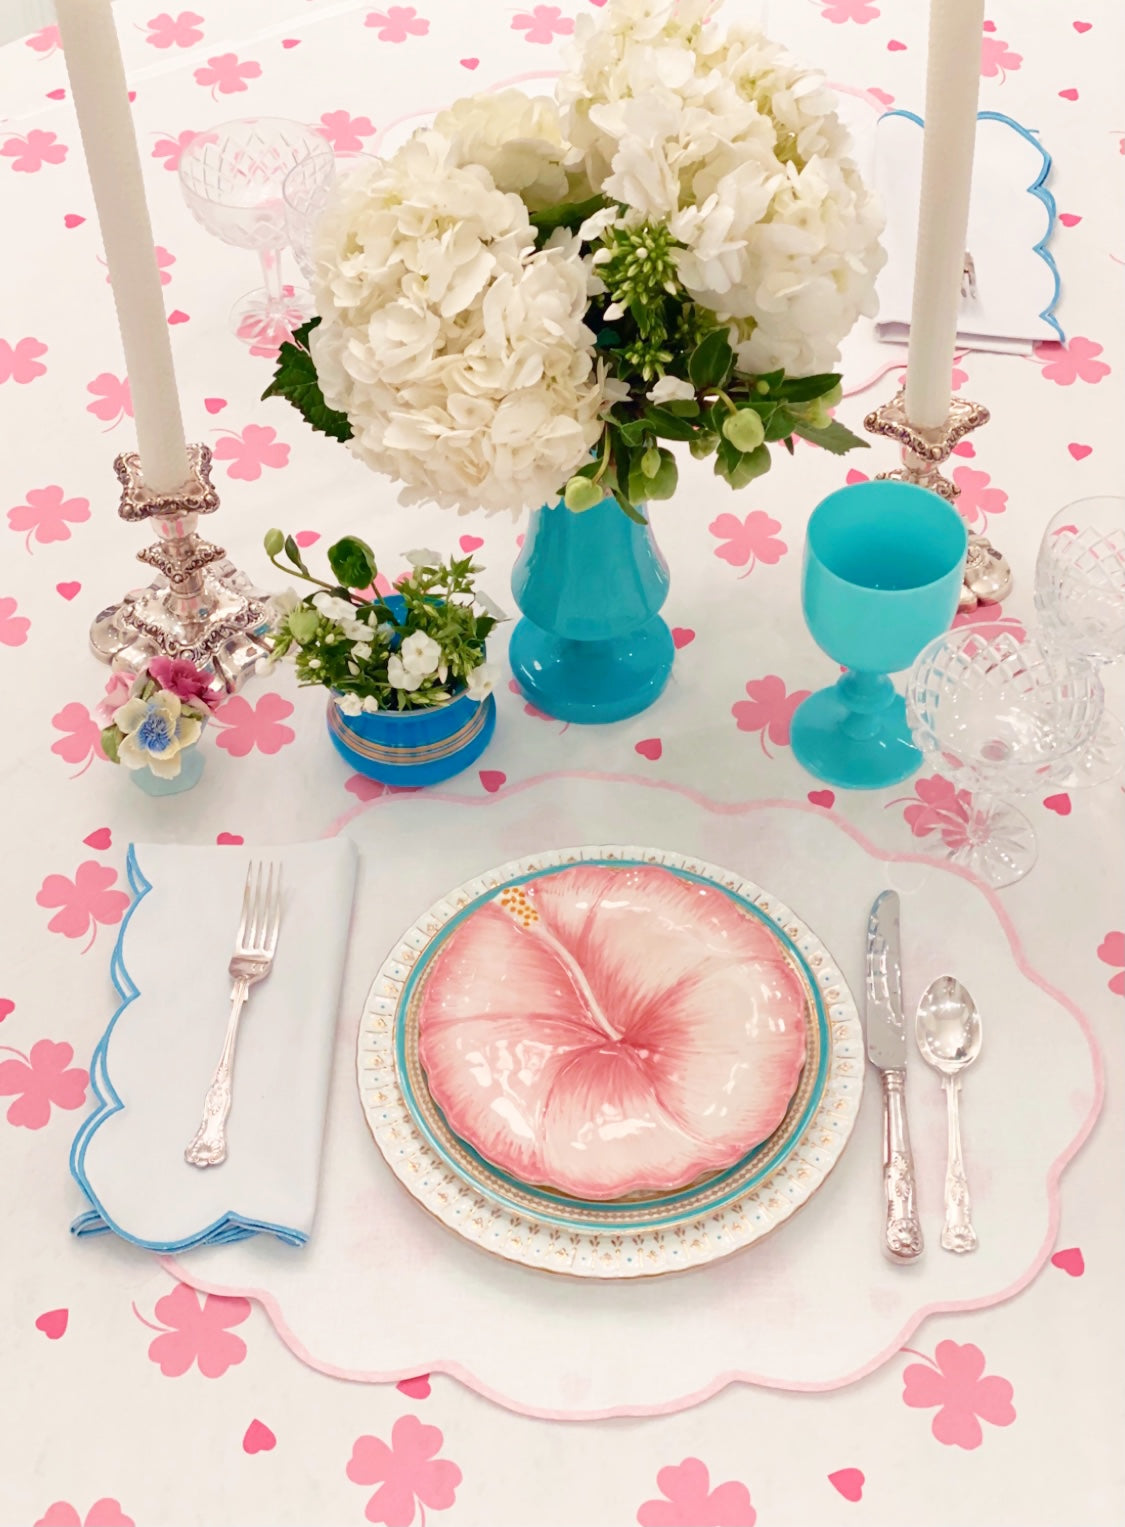 Pink Clover and Heart Tablecloth